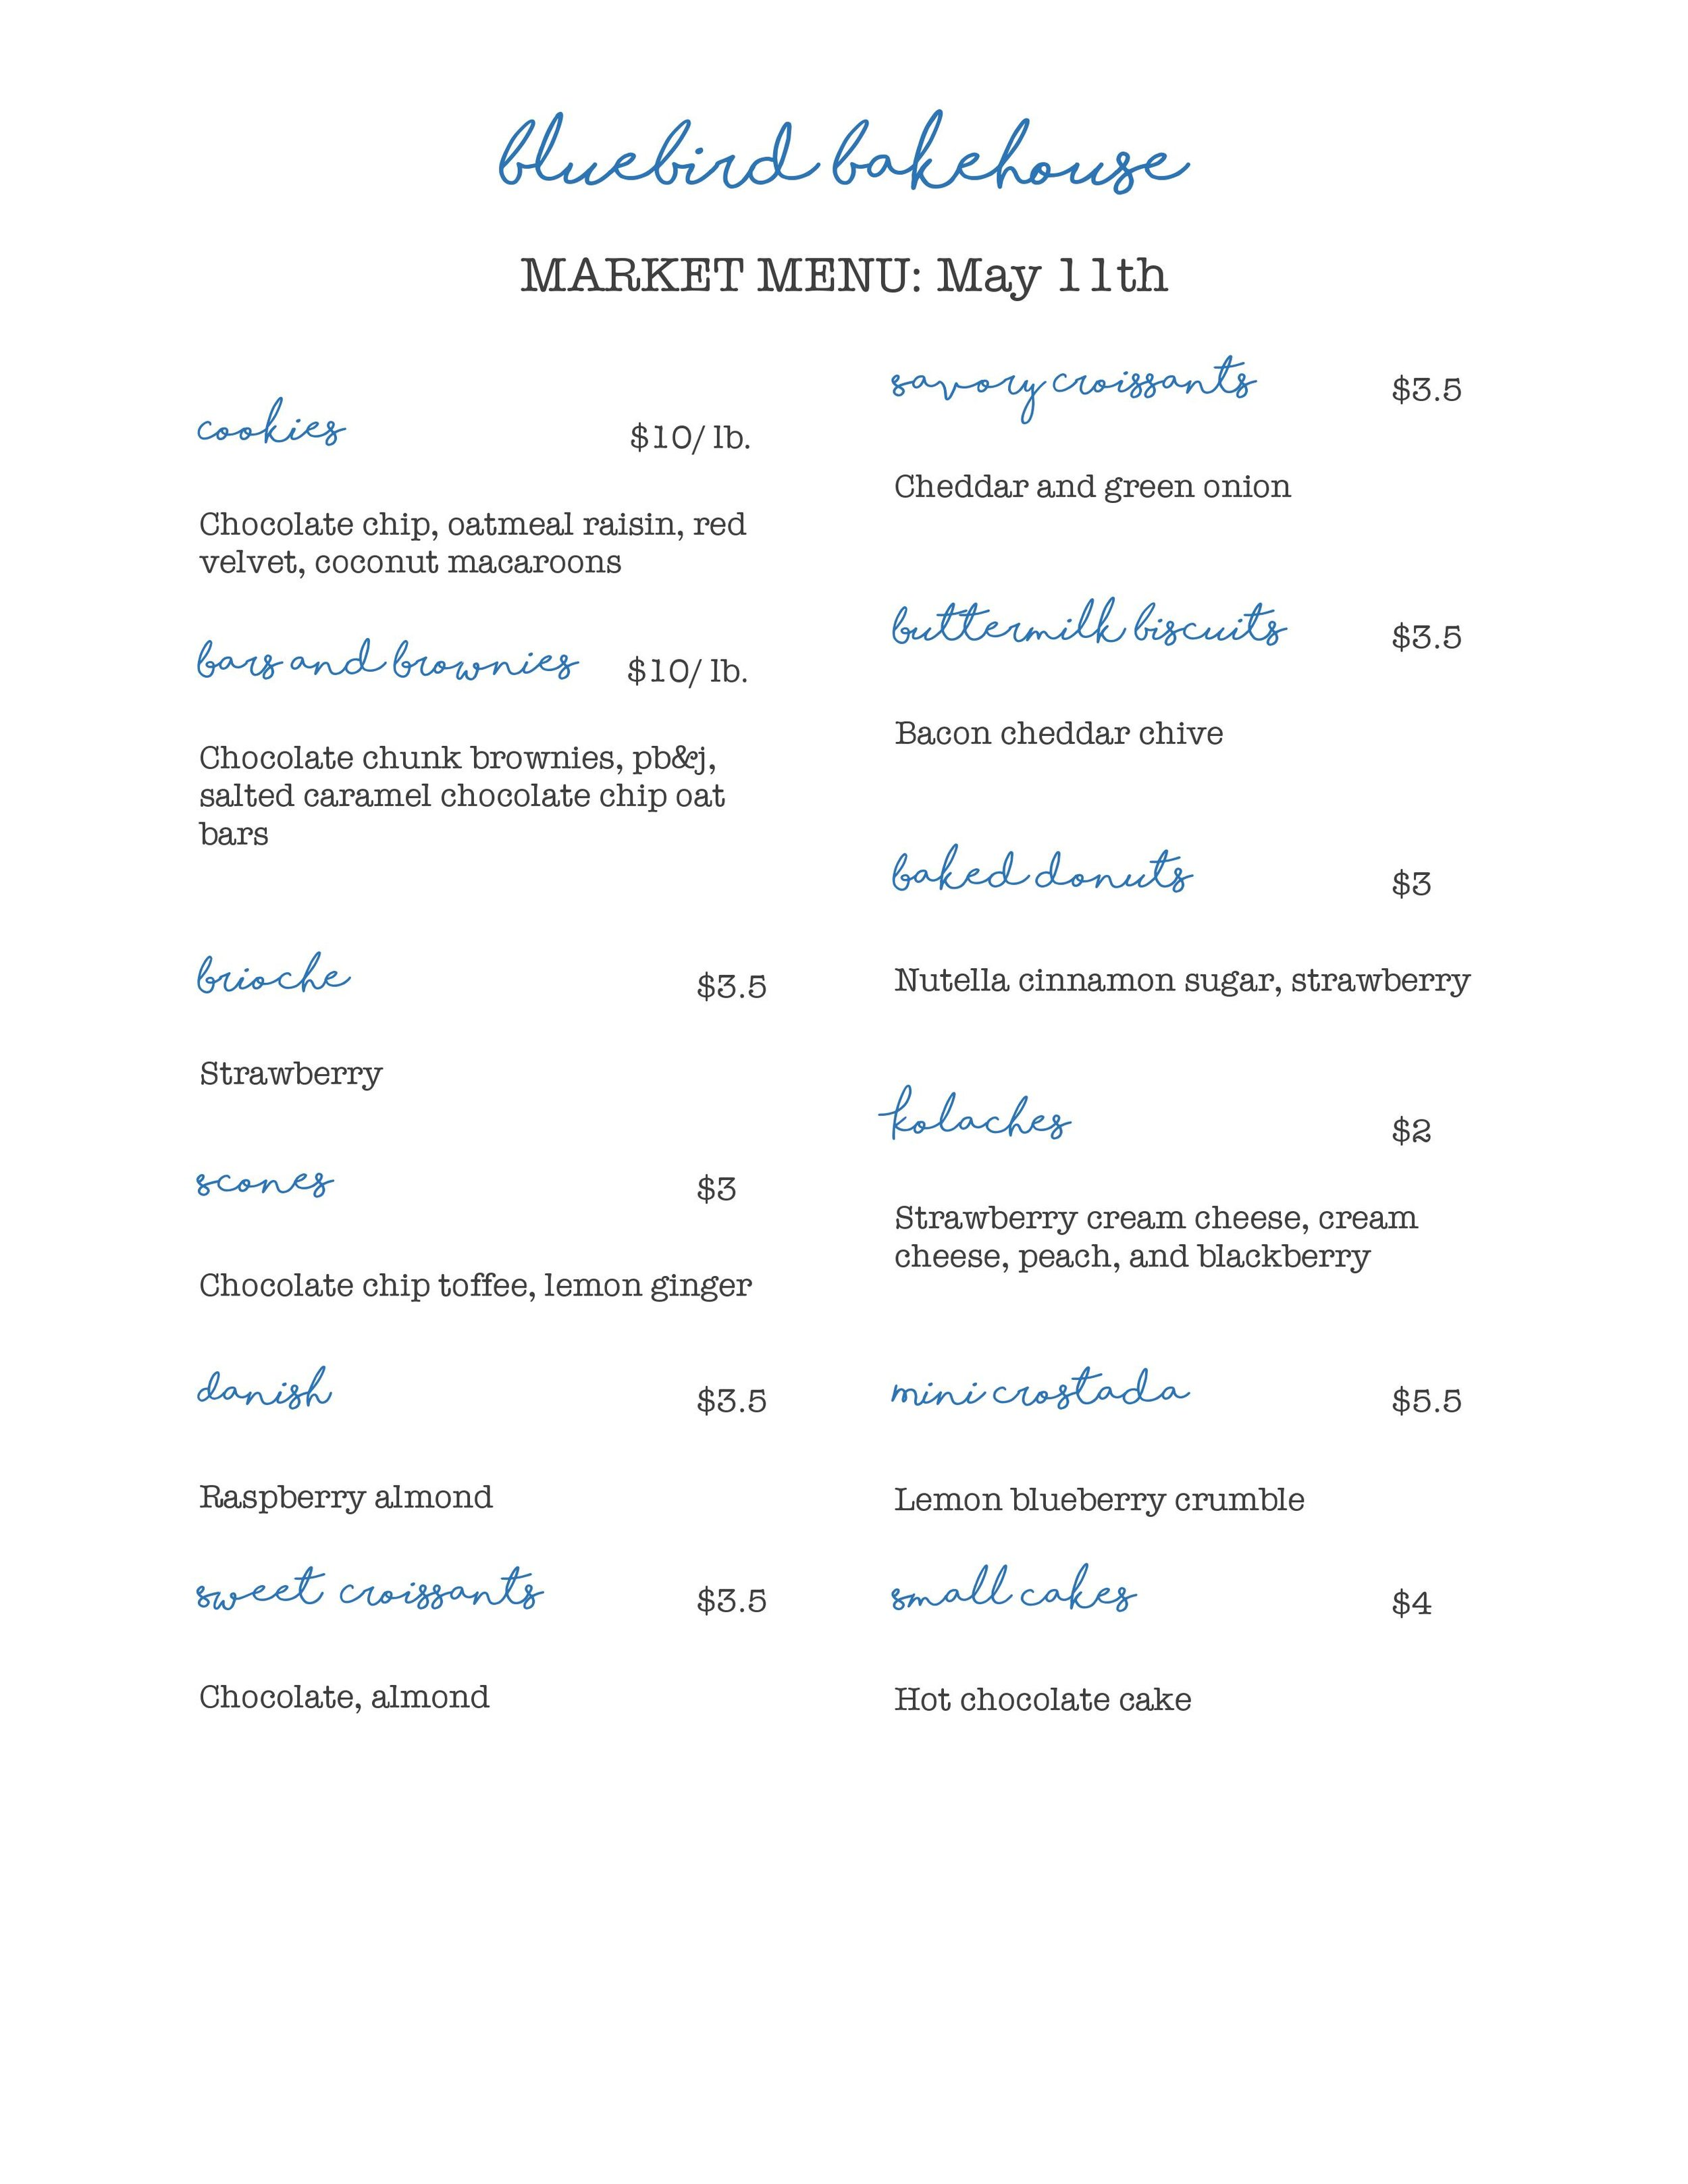 May 11th market menu.jpg